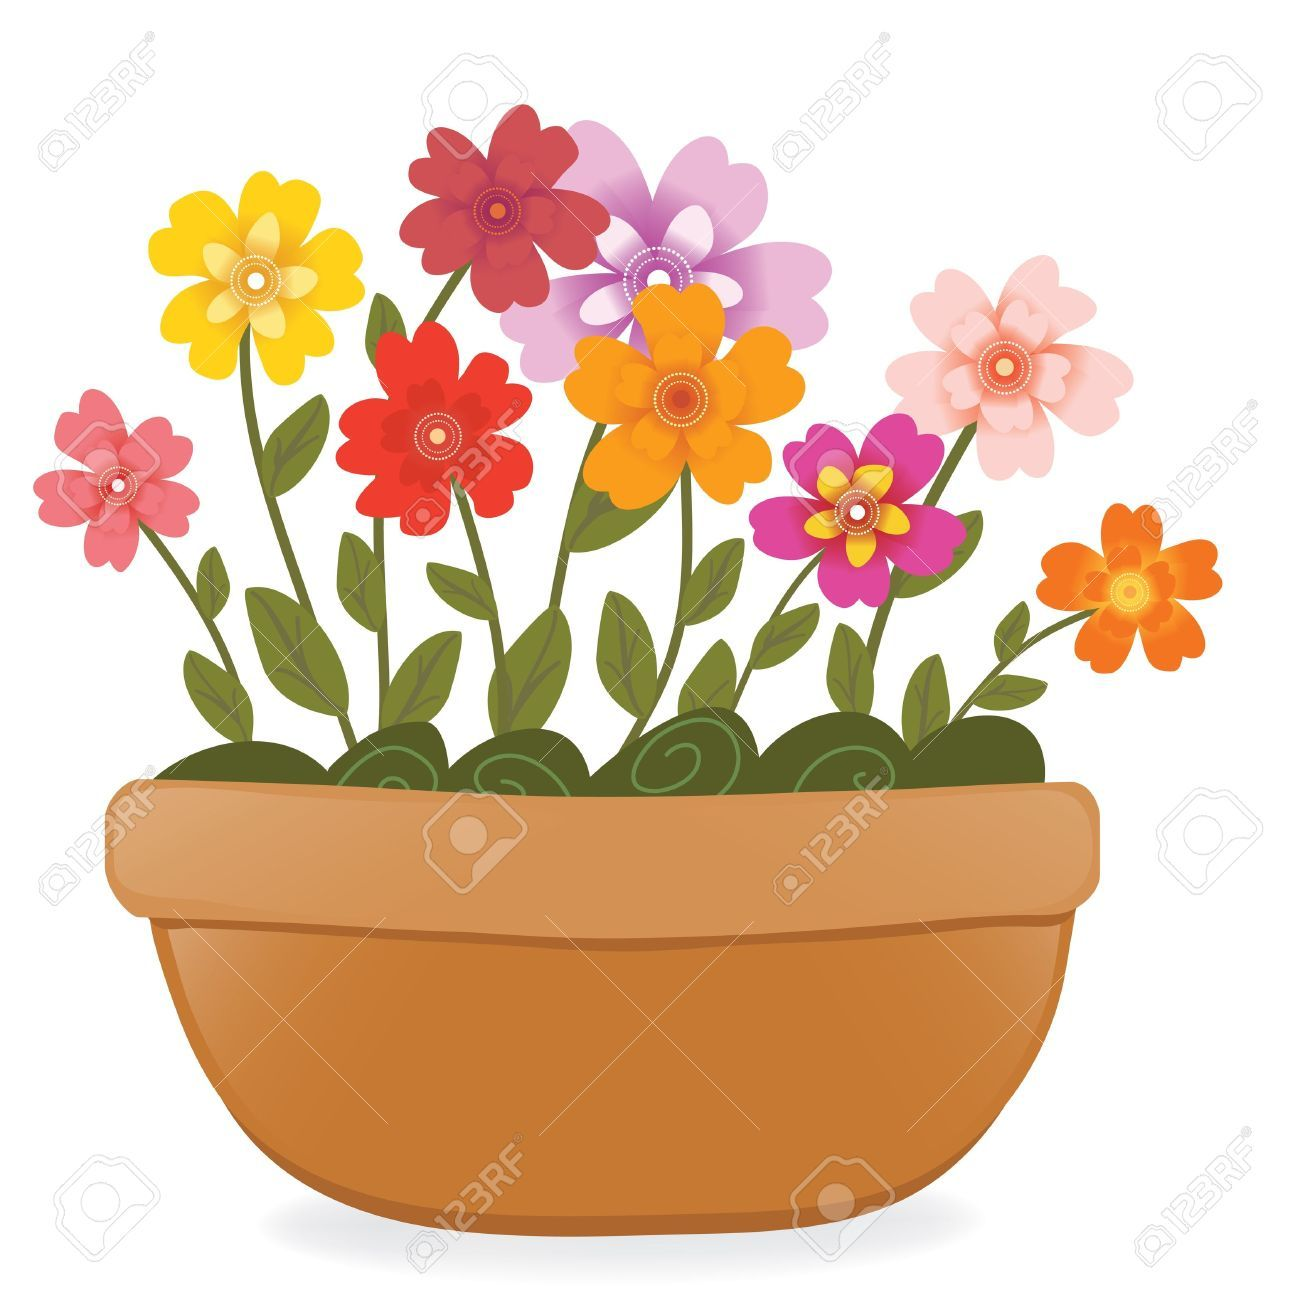 19 647 Flower Pot Stock Illustrations Cliparts And Royalty Free In 2021 Cartoon Flowers Flower Drawing Floral Art